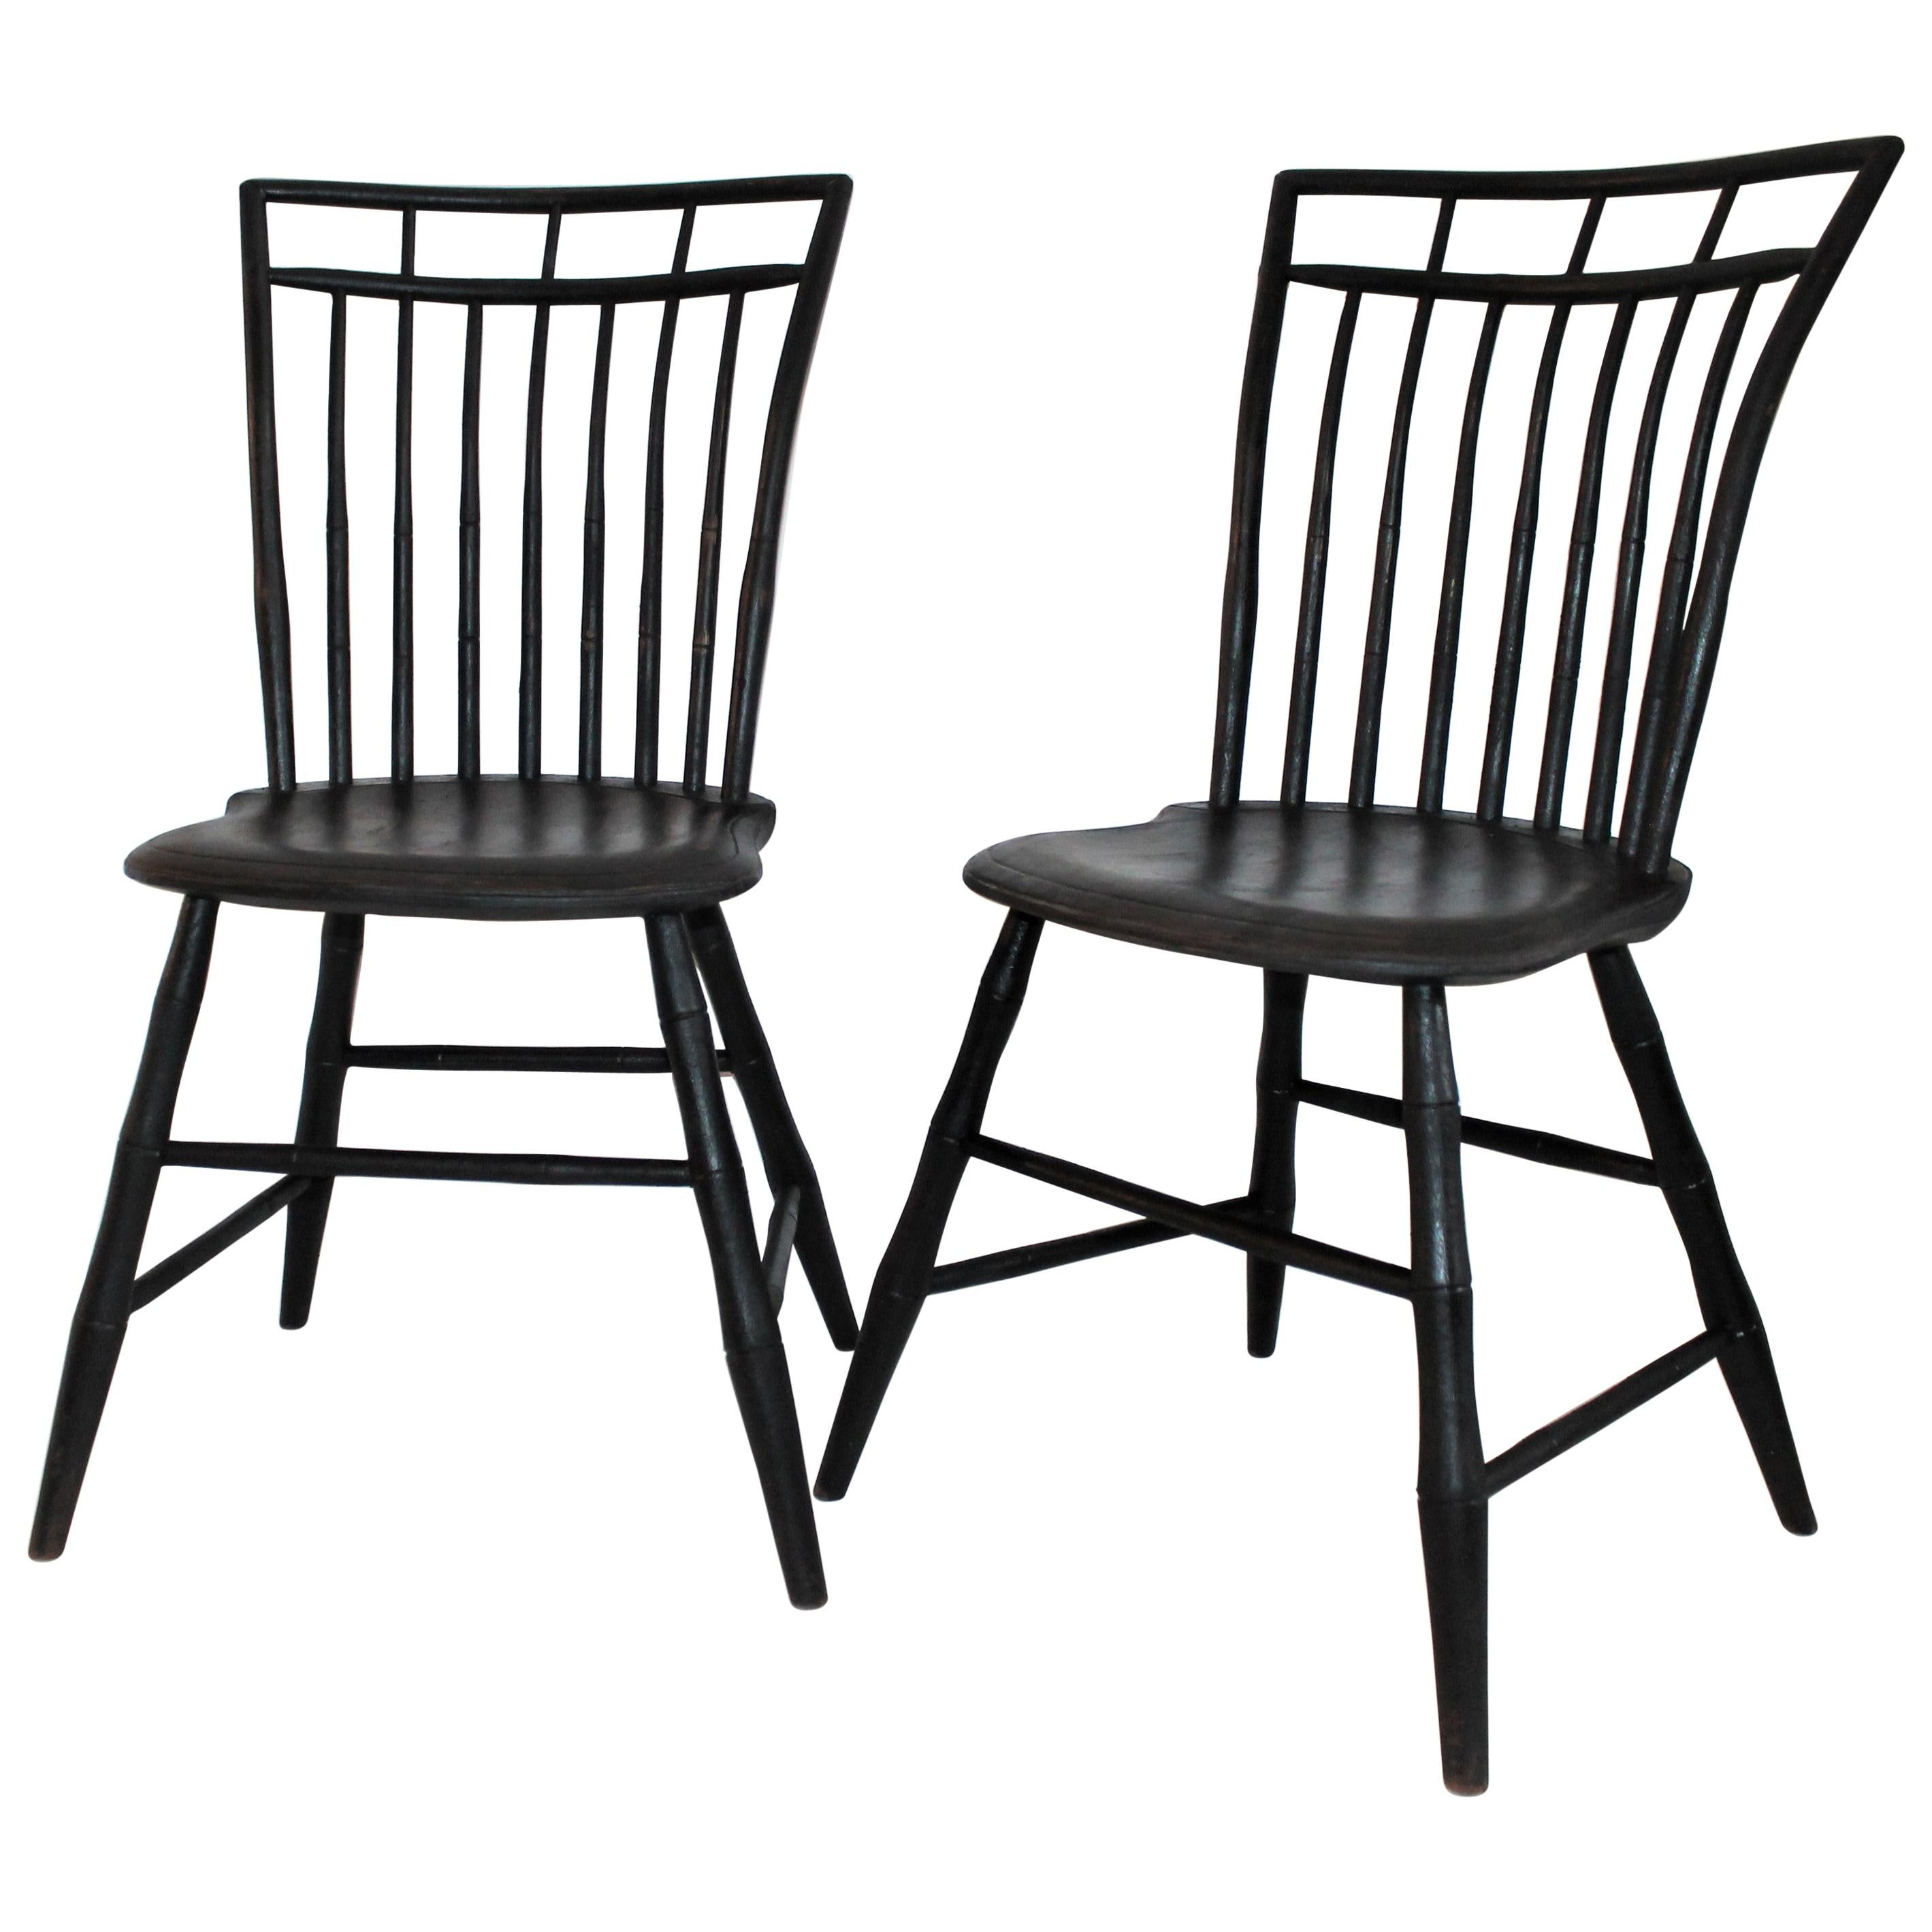 19th Century Windsor Chairs in Black Painted Surface, Pair